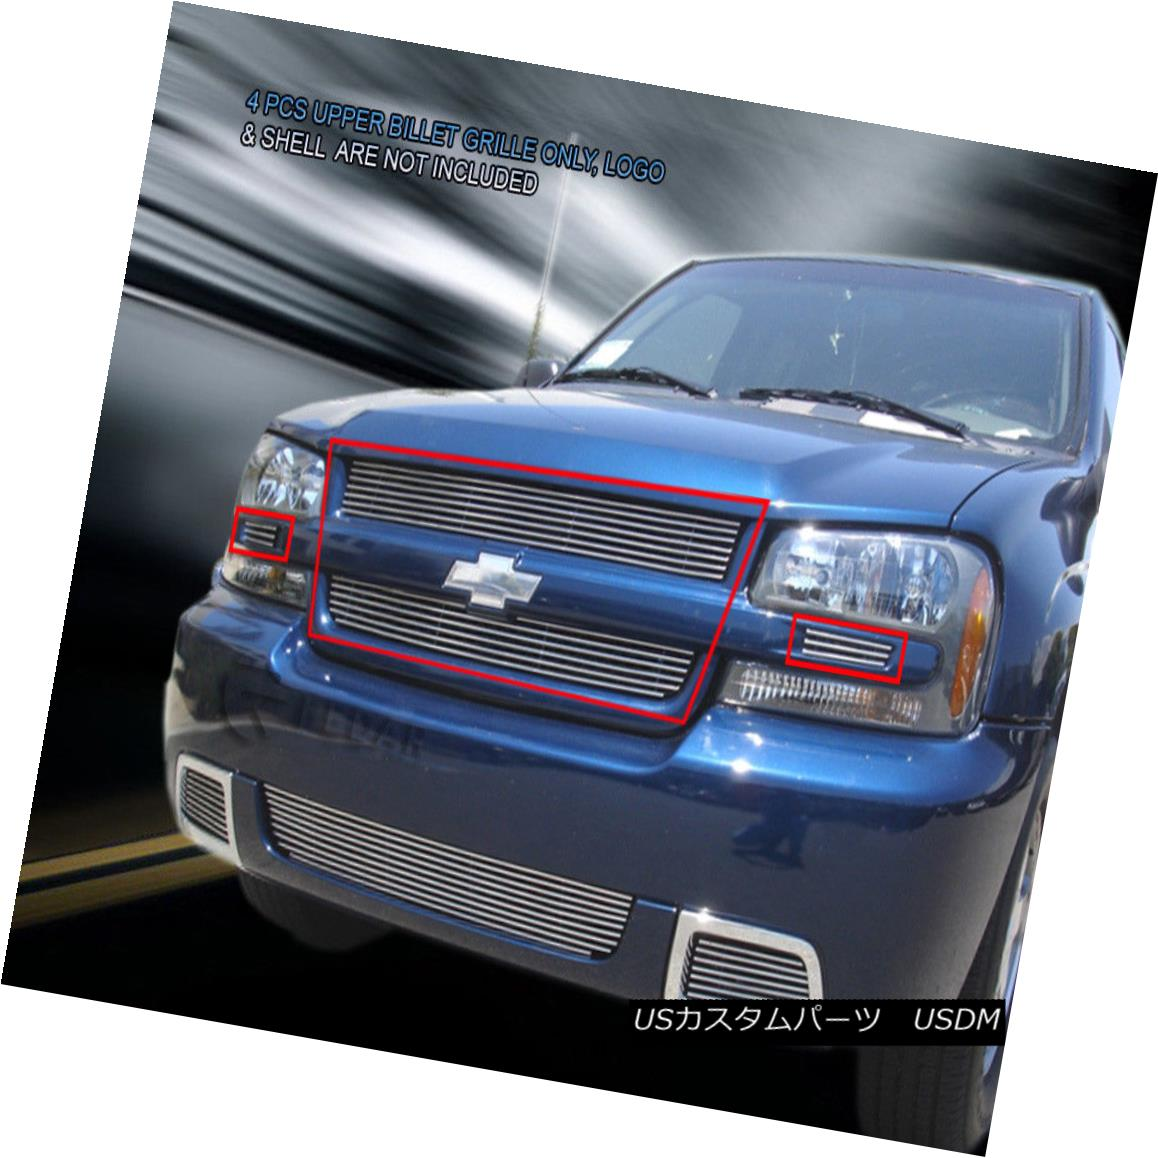 グリル For 06-09 Chevy Trailblazer SS Bolt-On Billet Grille Upper Grill Insert Fedar 06-09シボレートレイルブレイザーSS Bolt-On Billet Grilleアッパーグリルインサートフェルダー